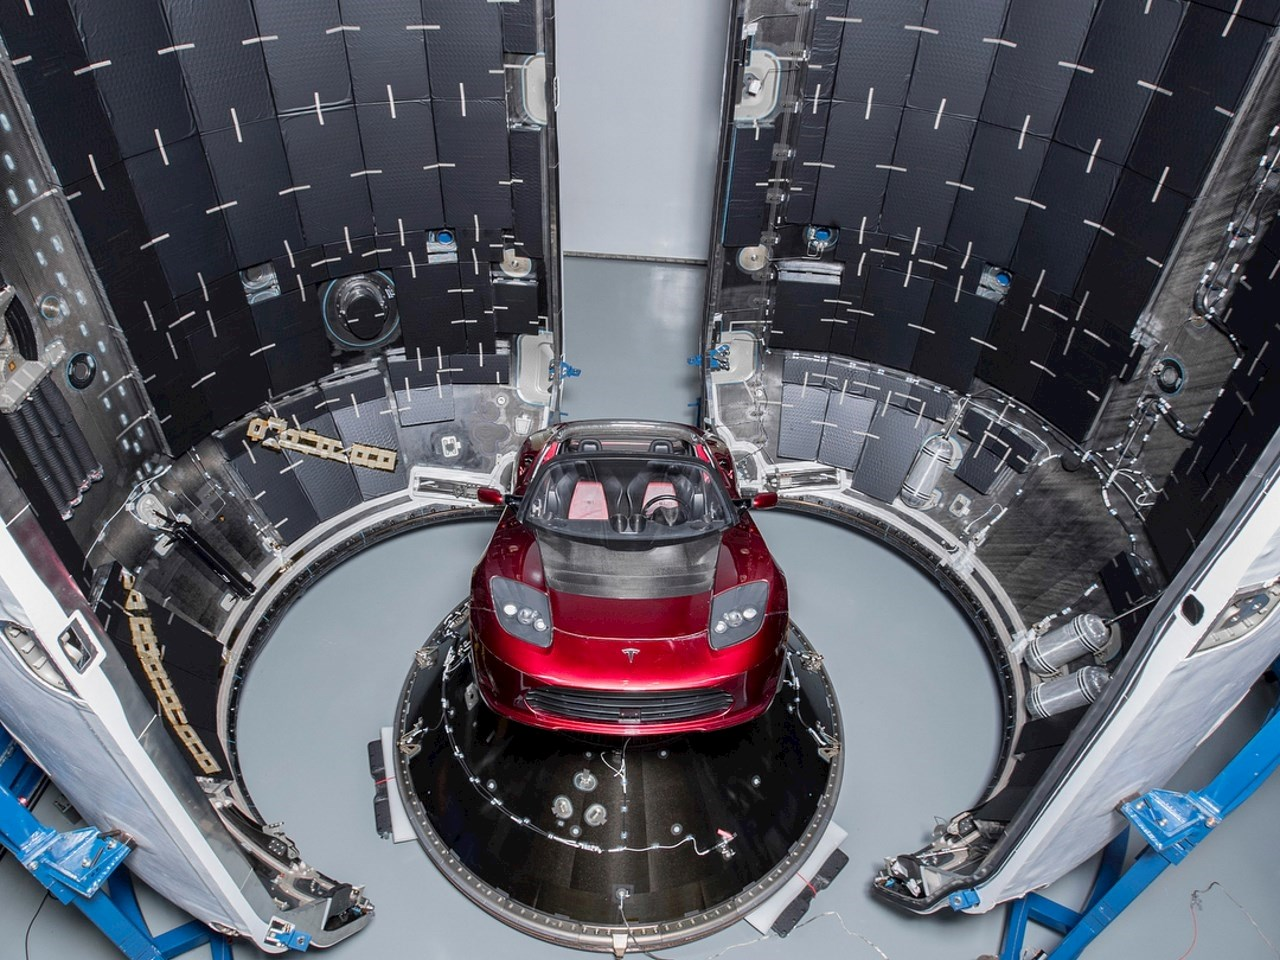 The Tesla roadster inside the payload of the Falcon Heavy